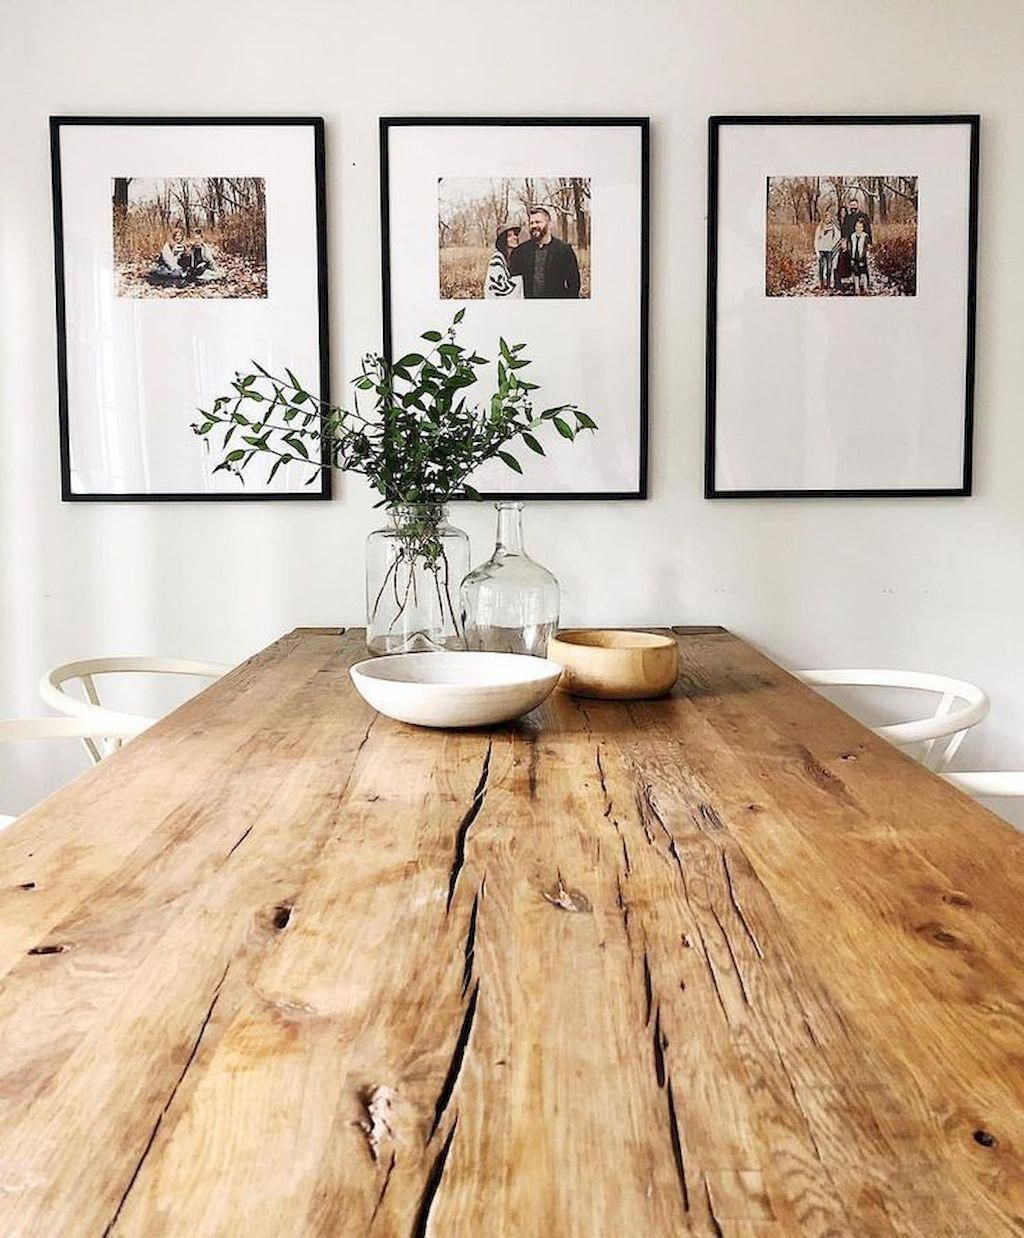 Christmas Dining Room Ideas To Add A Flourish To Christmas: 20 Gorgeous Vintage Wall Decor Ideas To Add Old-Fashioned